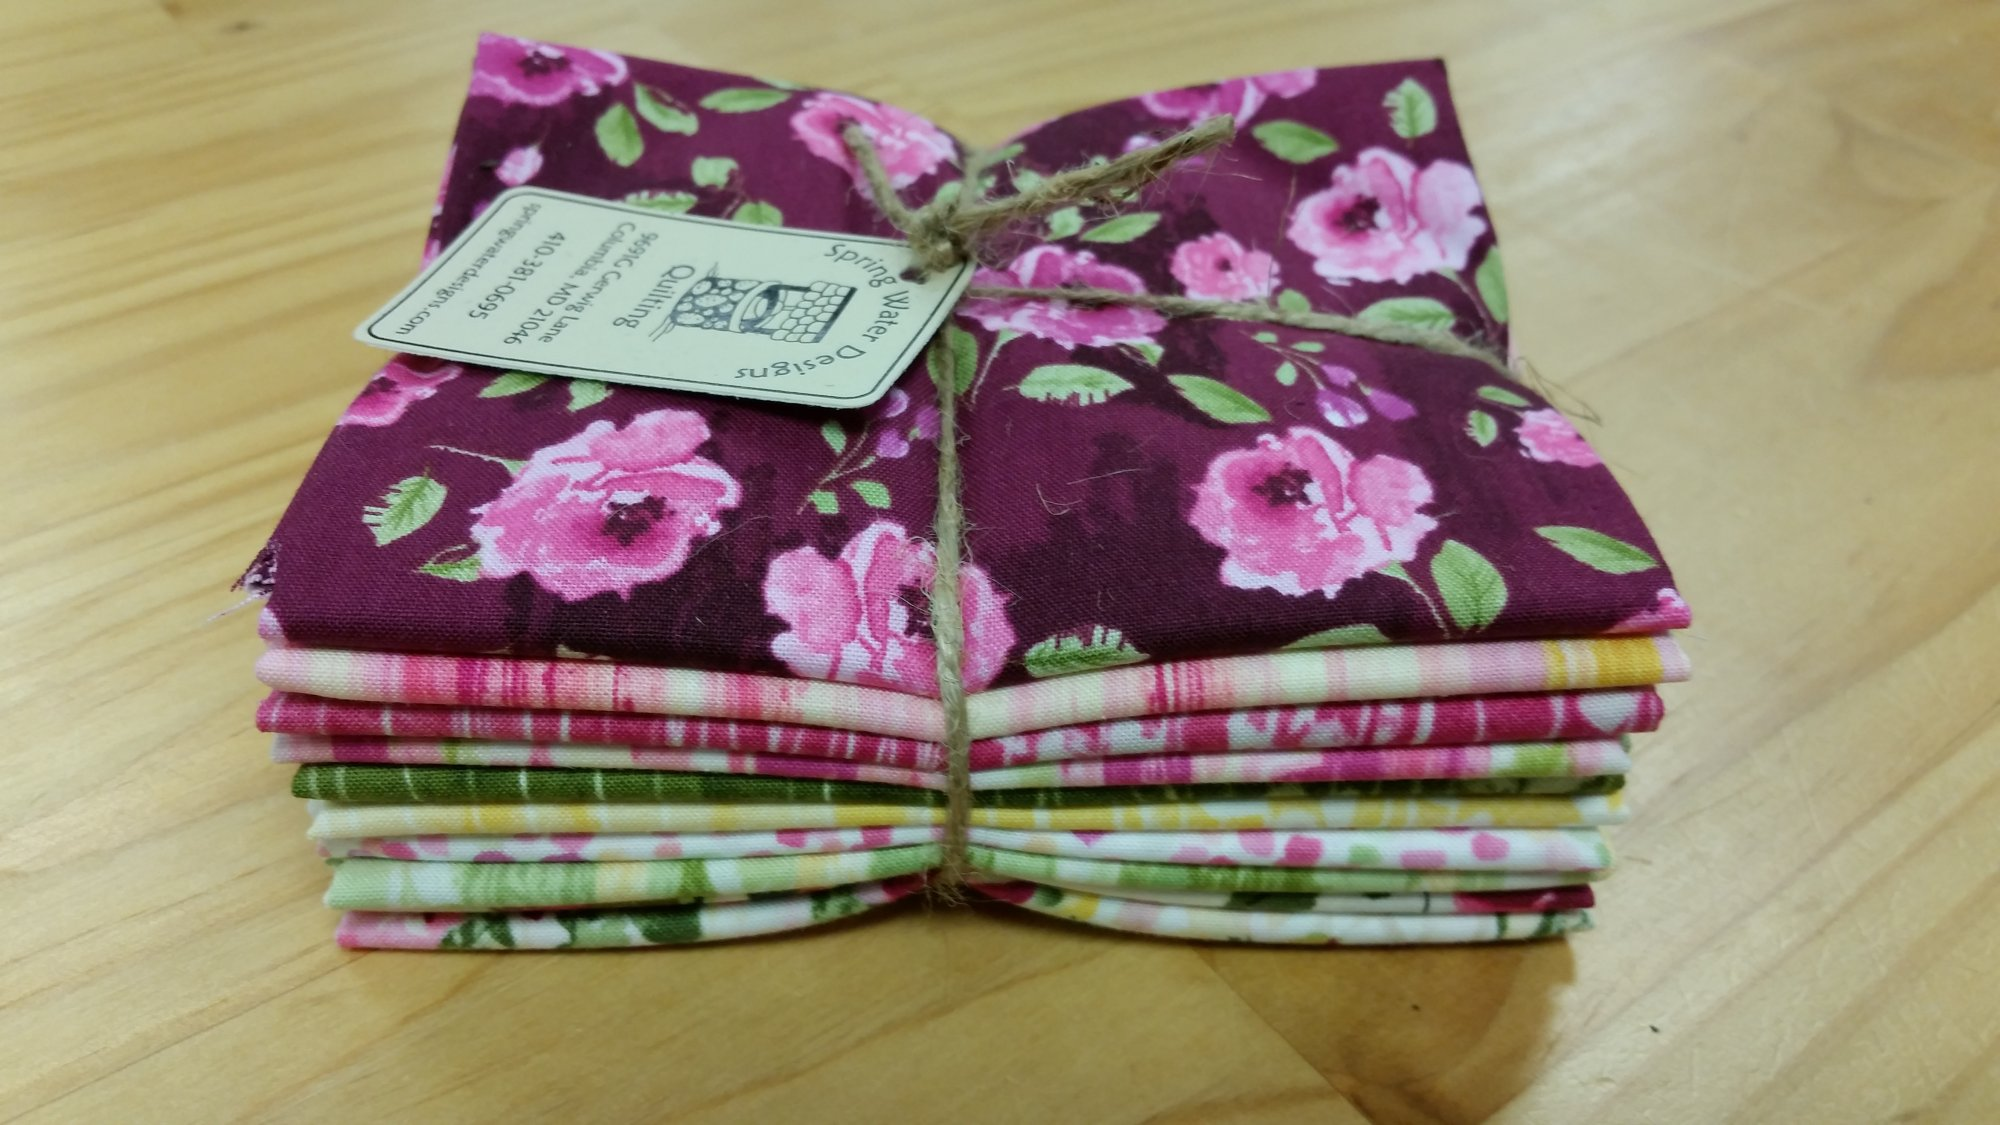 Muse Fat Quarter Bundle of 10 Fat Quarters by Alice Kennedy for Timeless Treasures